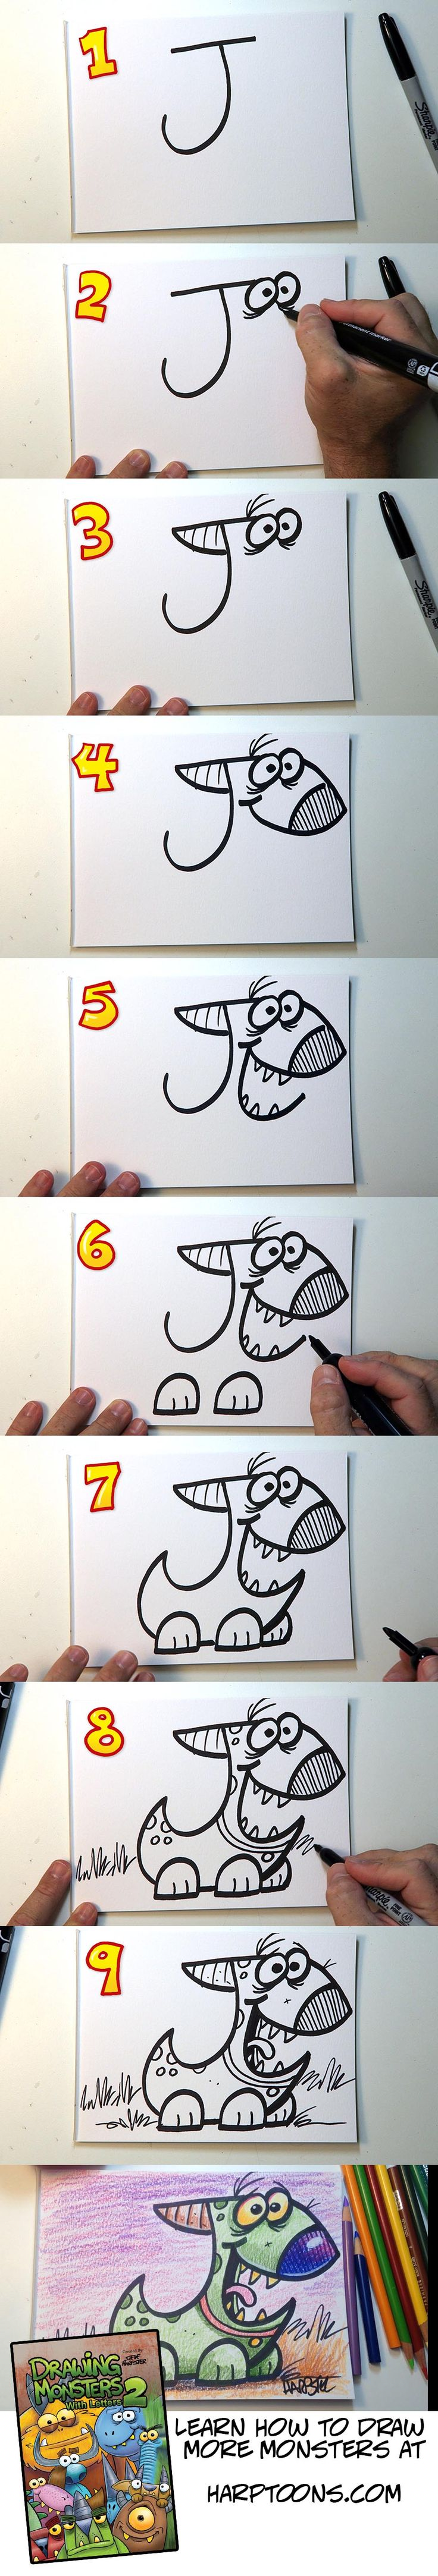 Want to learn how to draw more fun monsters starting with a letter? Just go to…